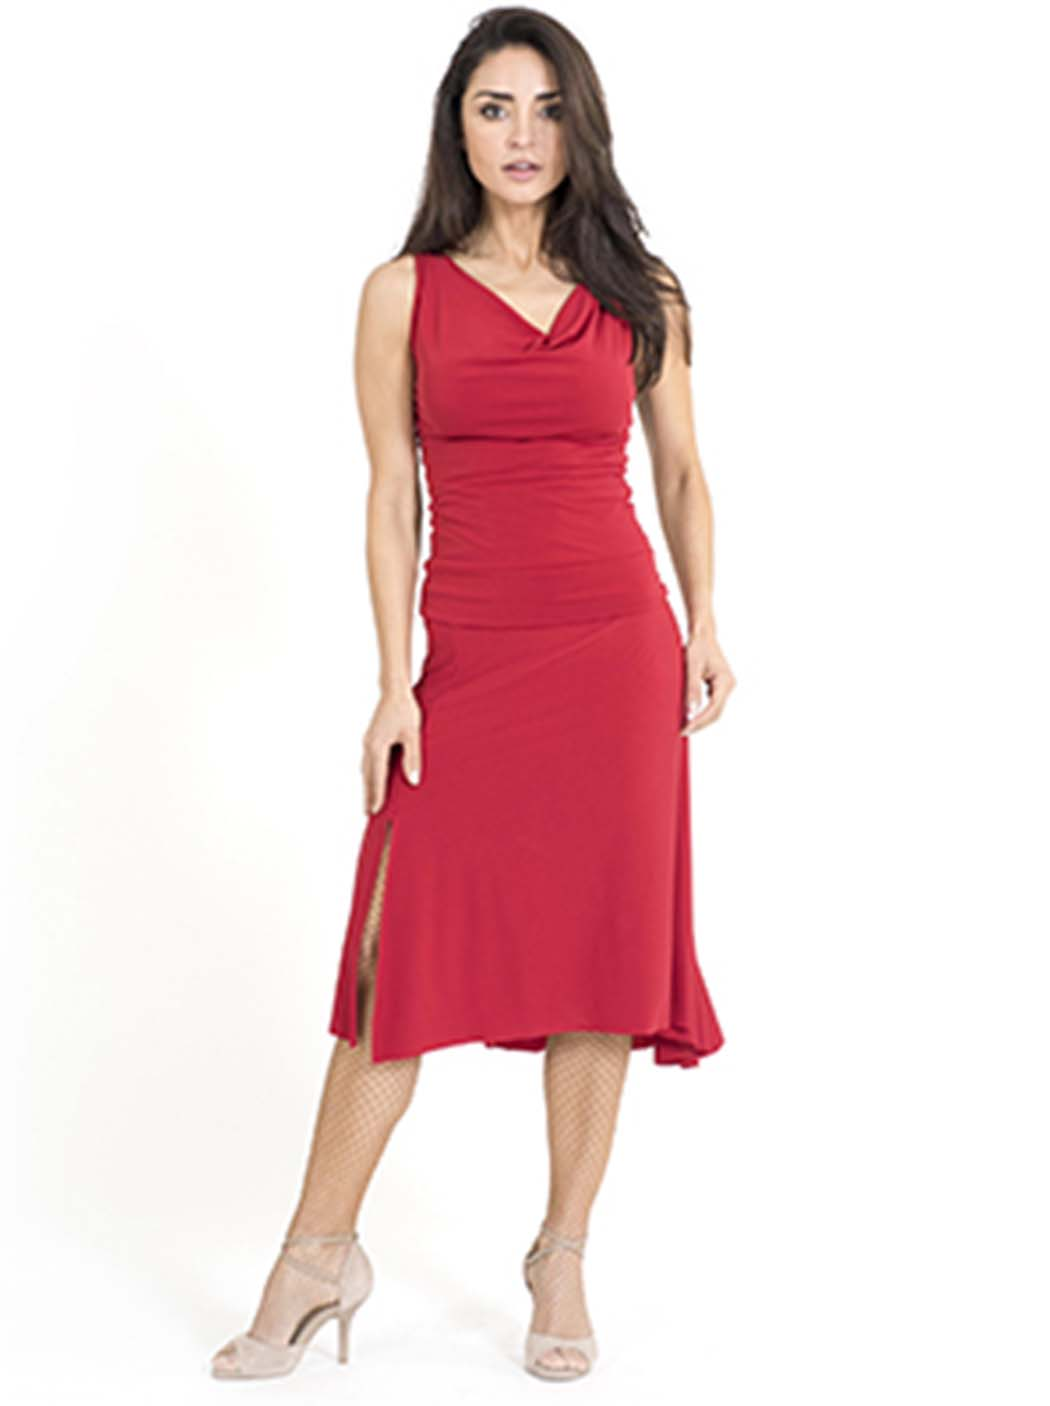 A lovely red argentine tango skirt